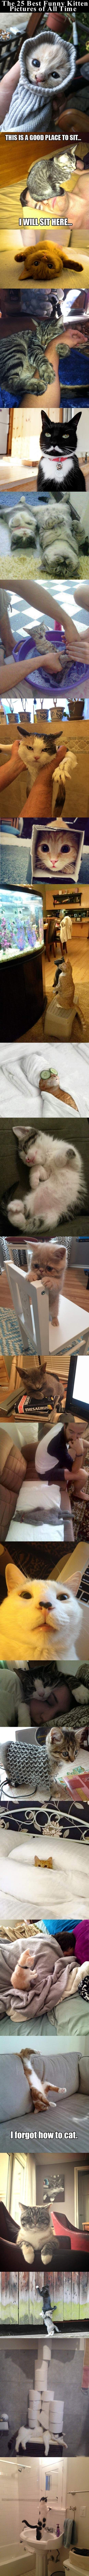 The 25 Best Funny Kitten Pictures of All Time cute animals cat cats adorable animal kittens pets lol kitten humor funny pictures funny animals funny cats